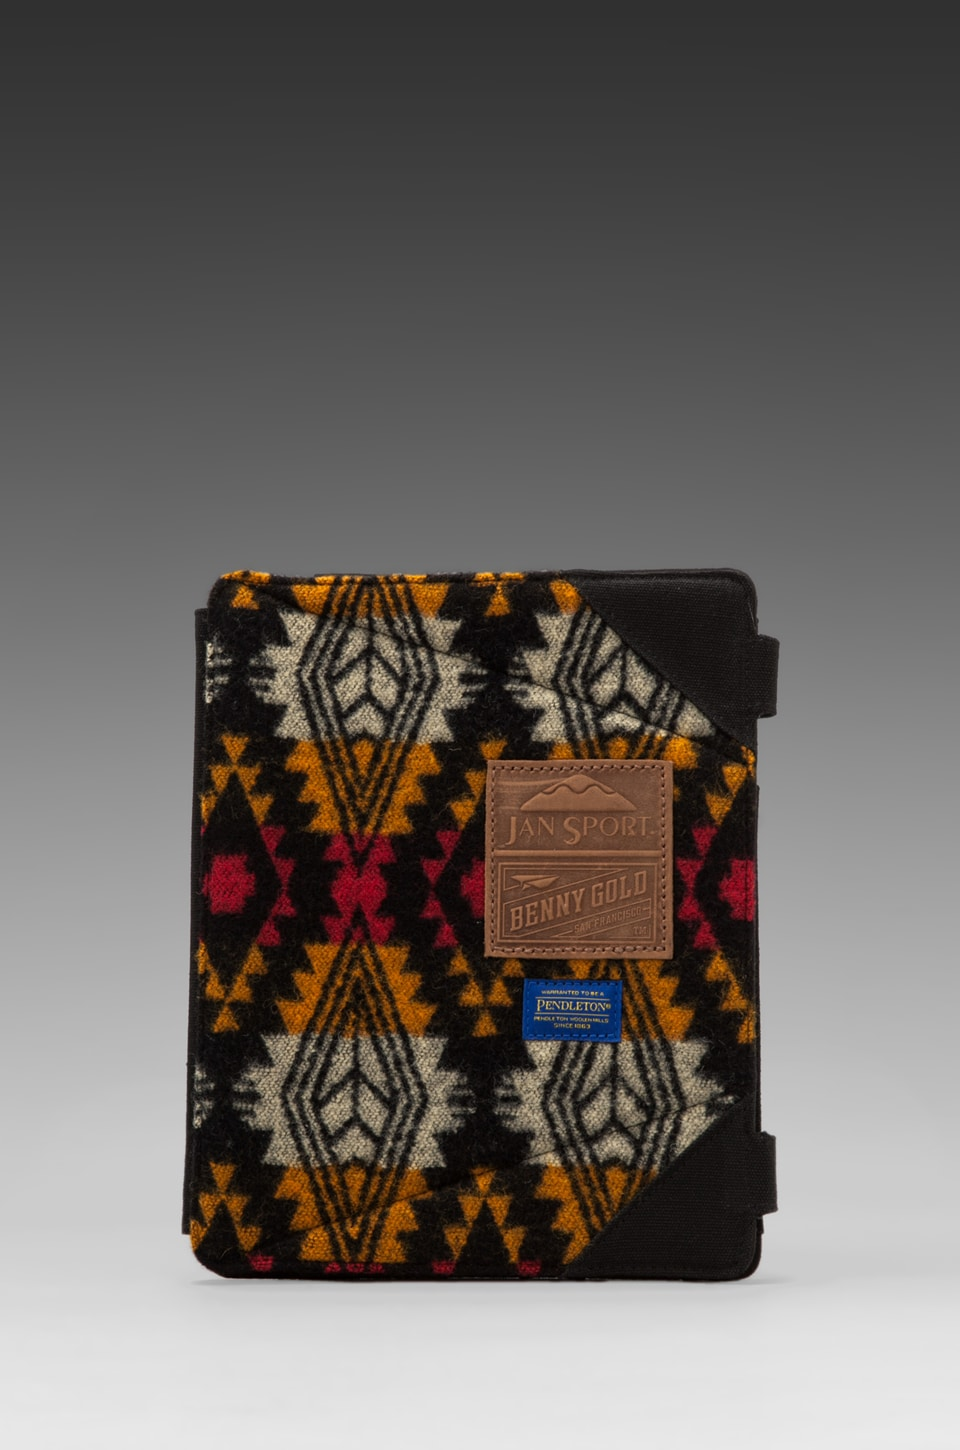 Jansport x Pendleton Mag Sleeve iPad Case in Print